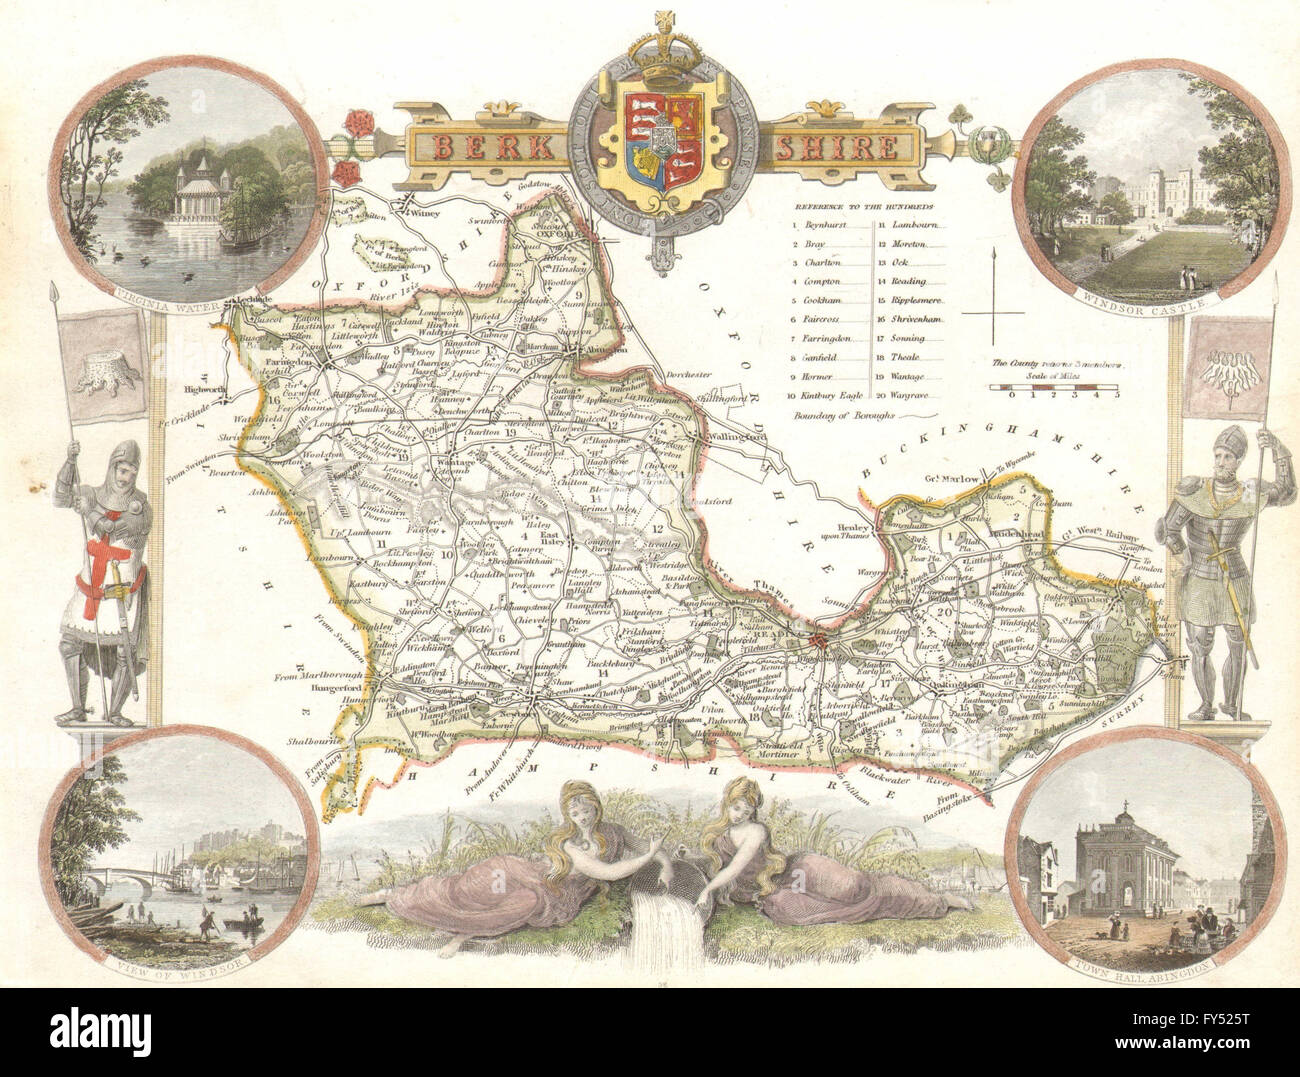 Railways Yorkshire East Riding Antique County Map Moule C1840 Easy To Use Hand Coloured